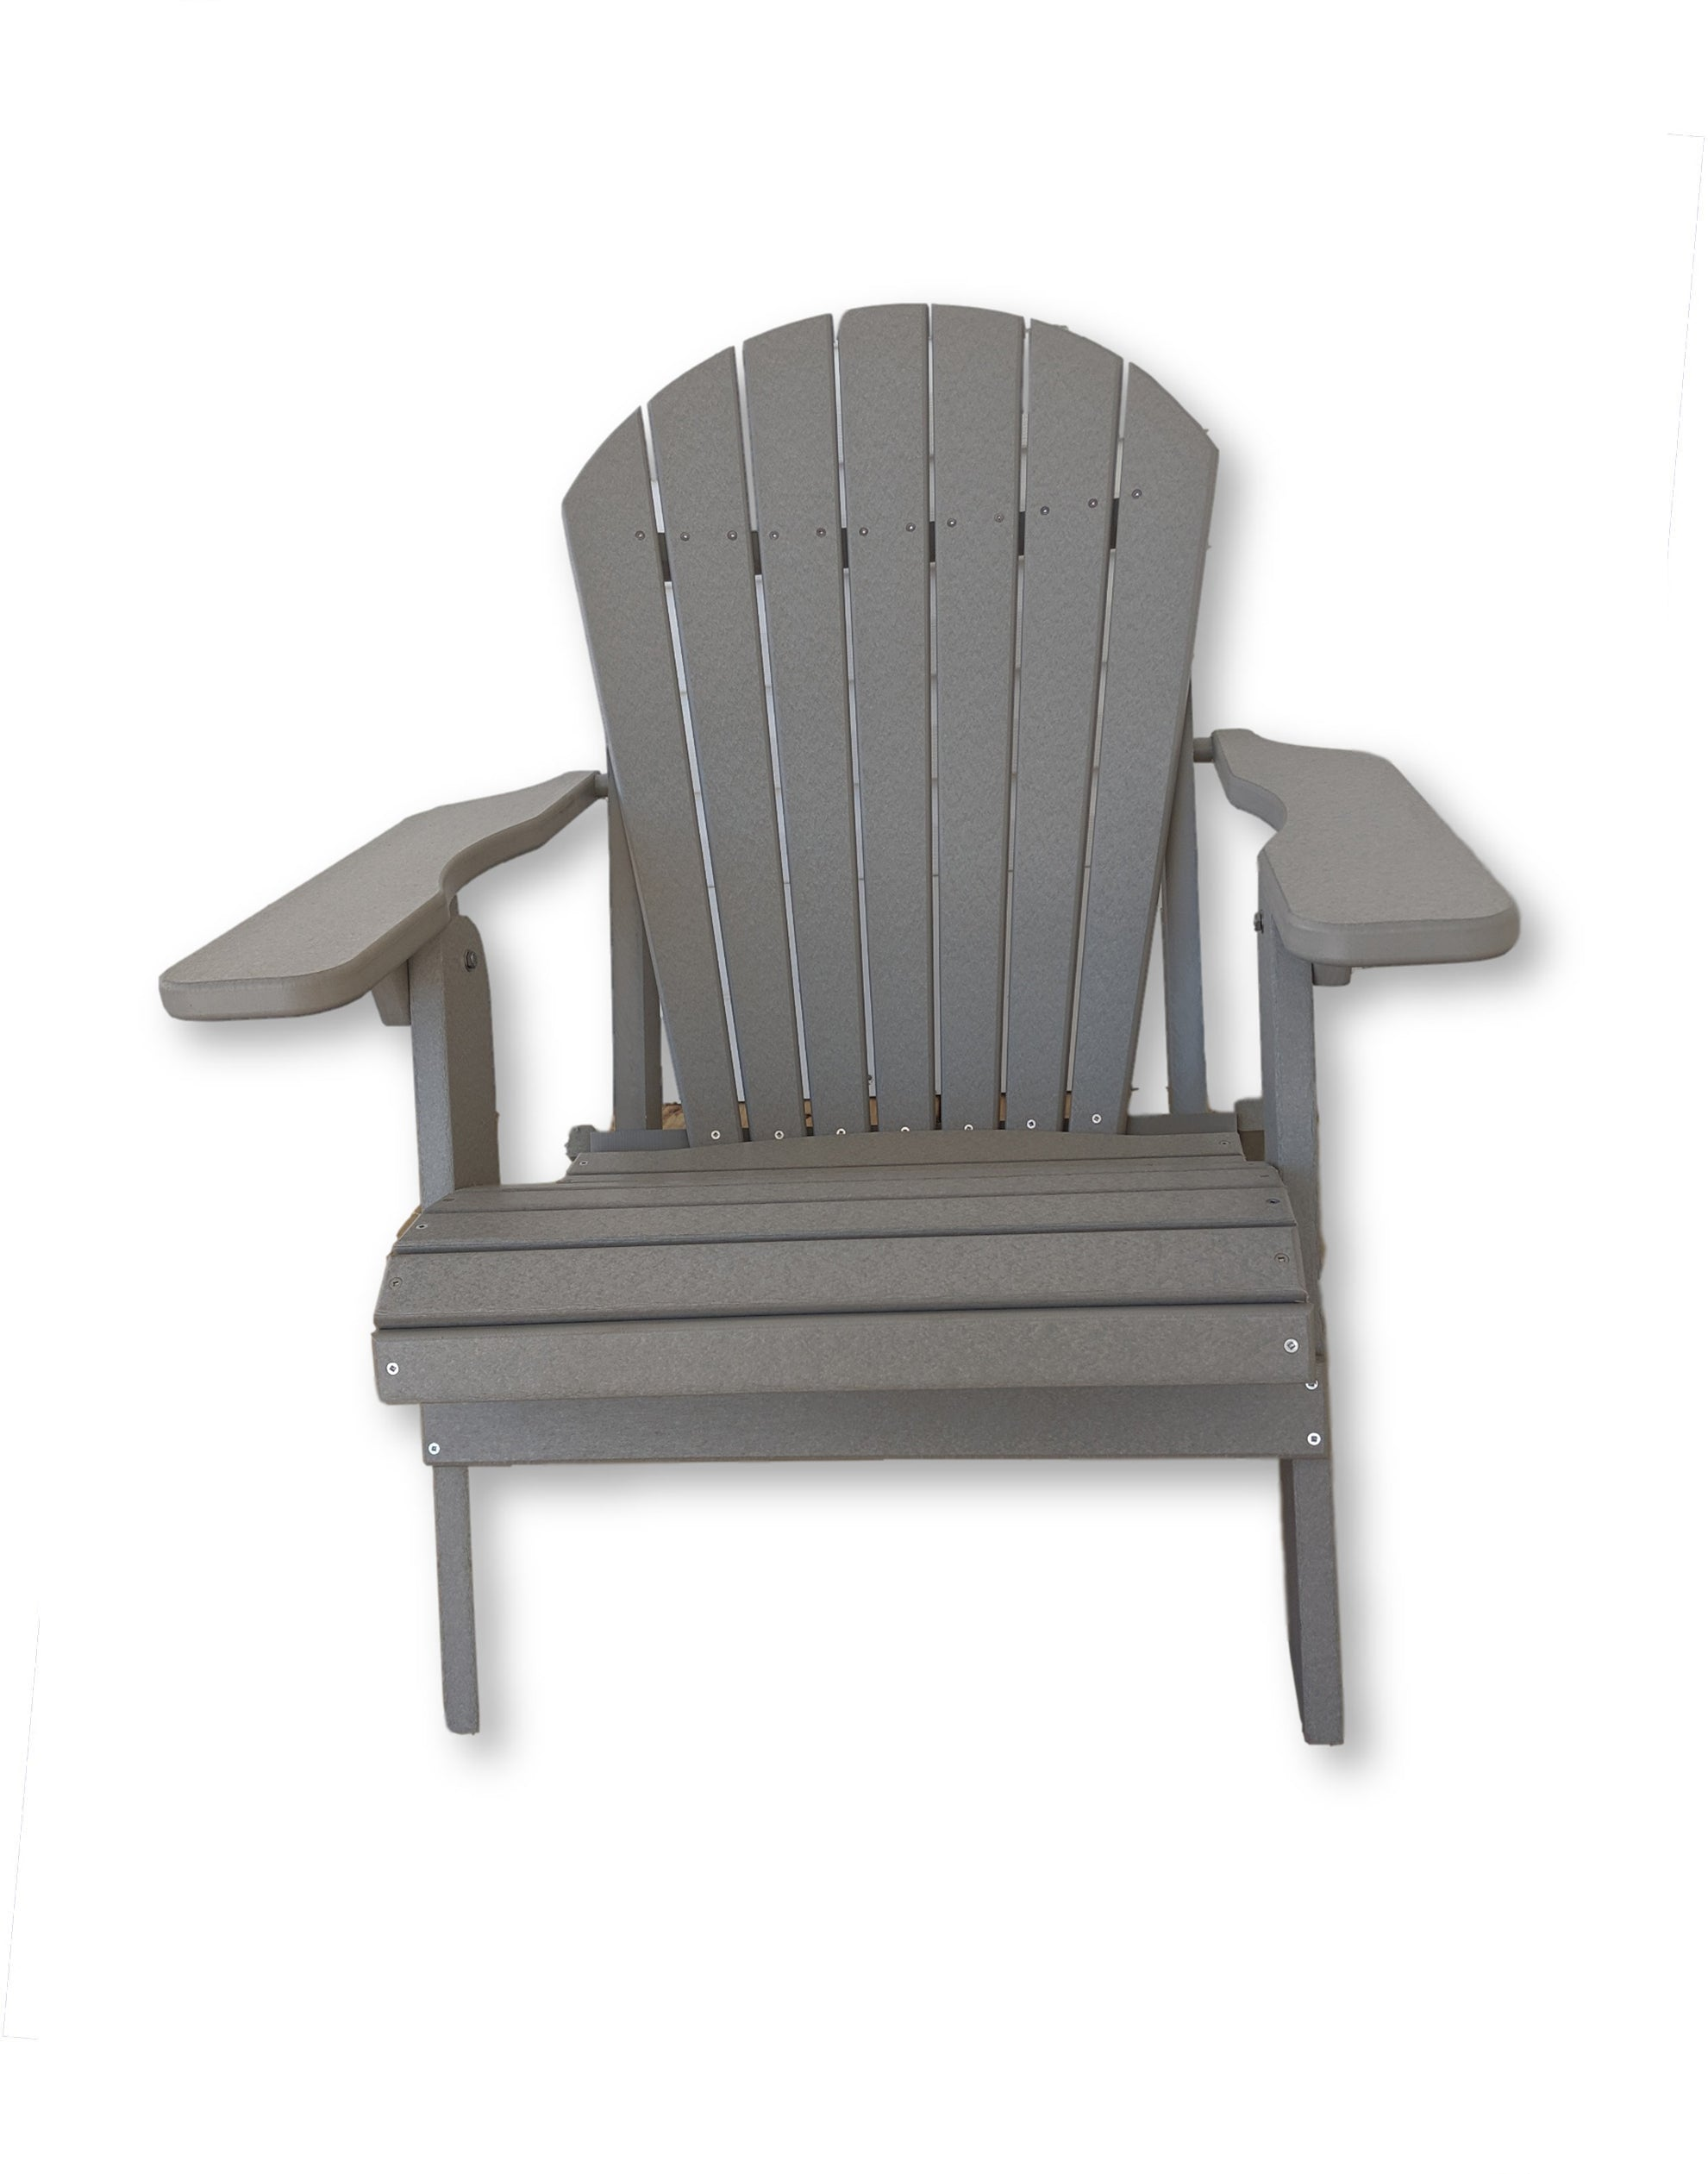 Dove Gray Folding Adirondack Chair(No Cup Holders)